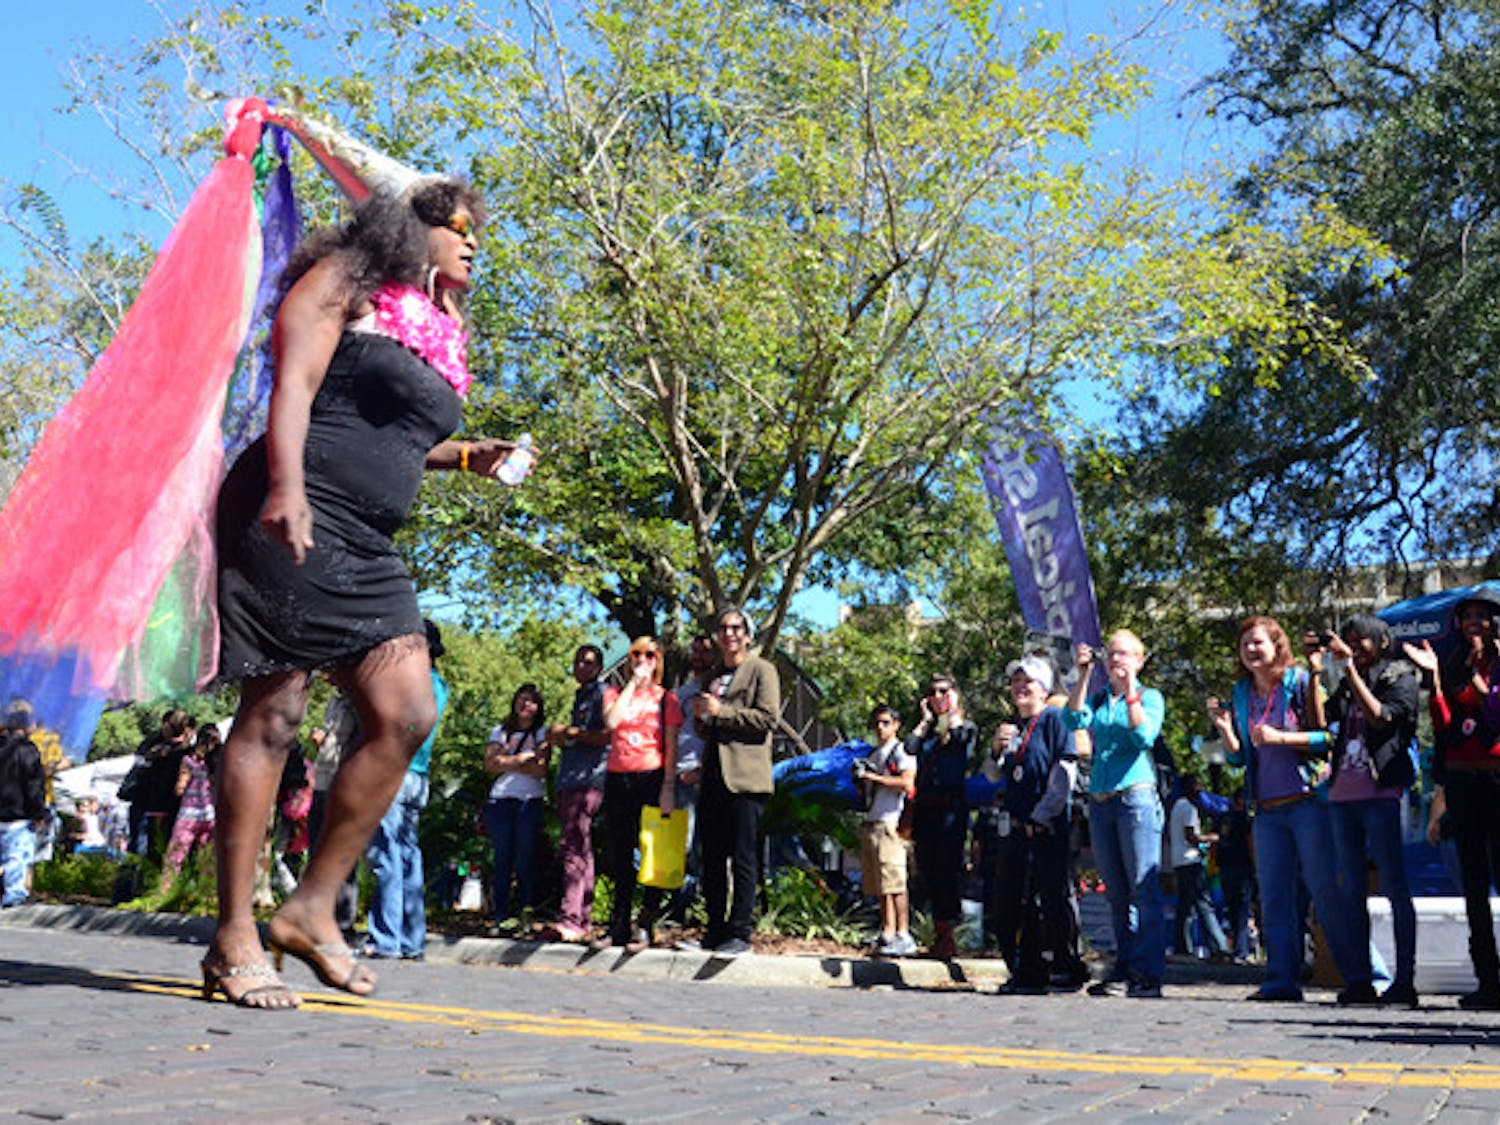 Connell Howell, known as Champagne, struts down Southeast First Street during the Gainesville Pride Parade on Saturday.